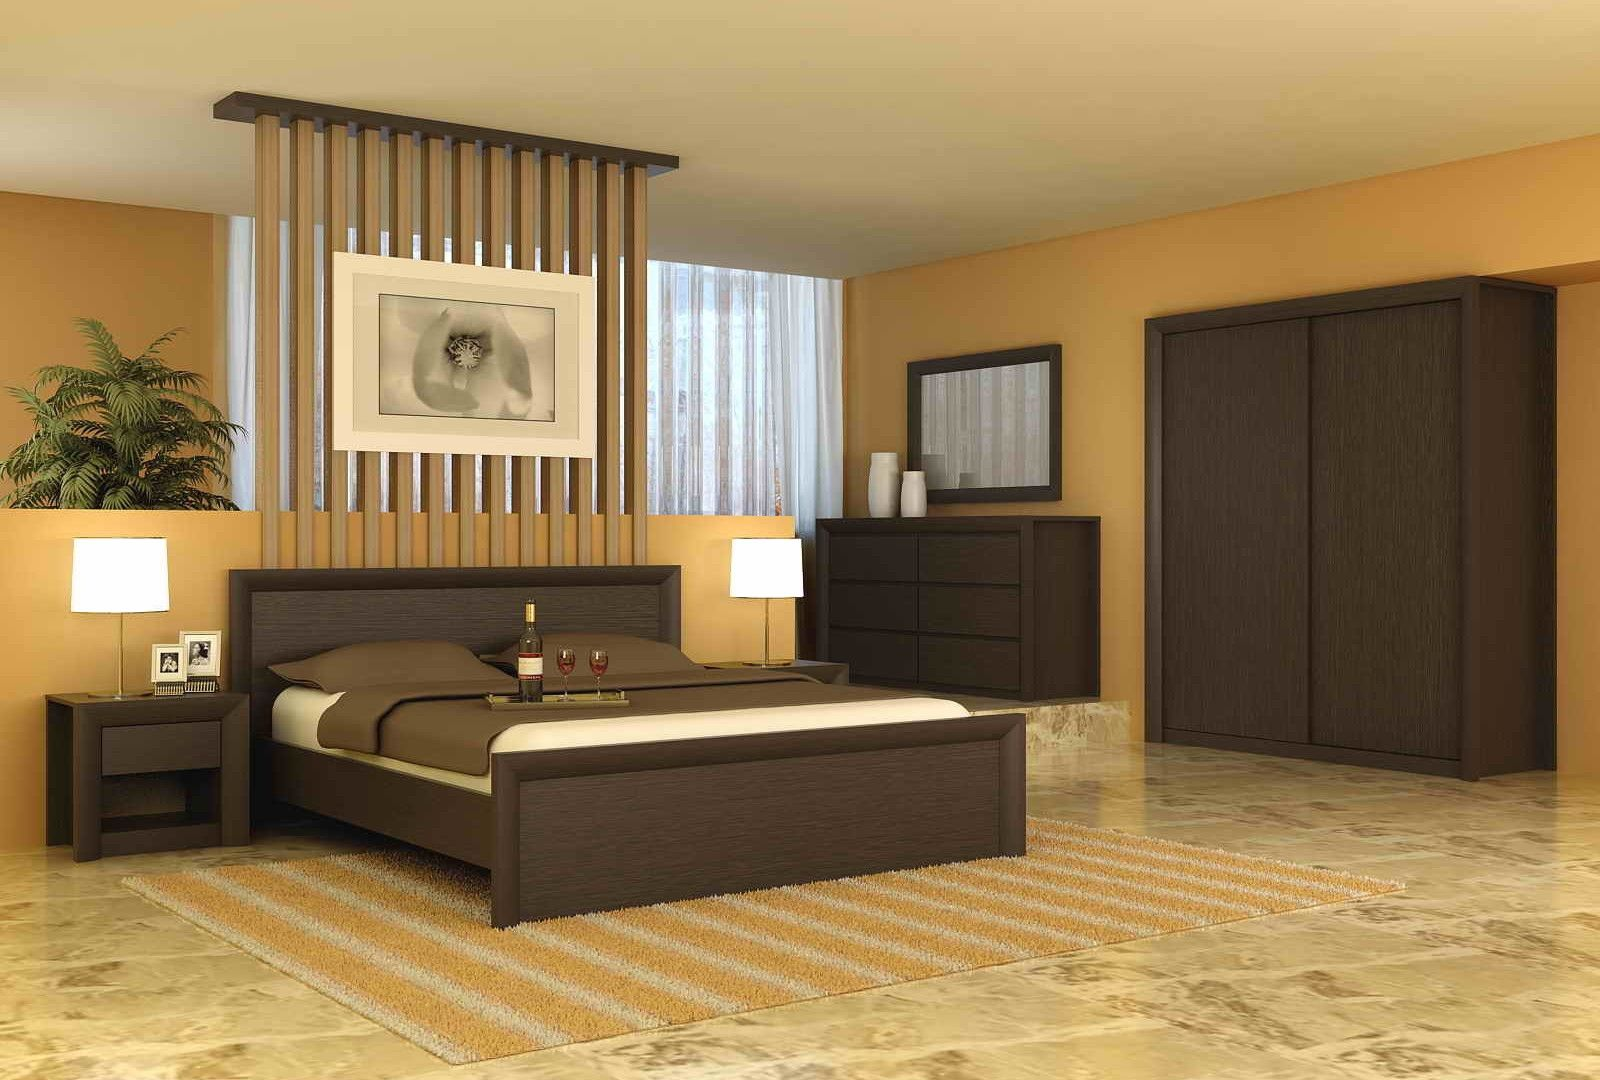 simple bedroom wall wardrobe design simple modern bedroom decorating ideas with calm wall color shades and